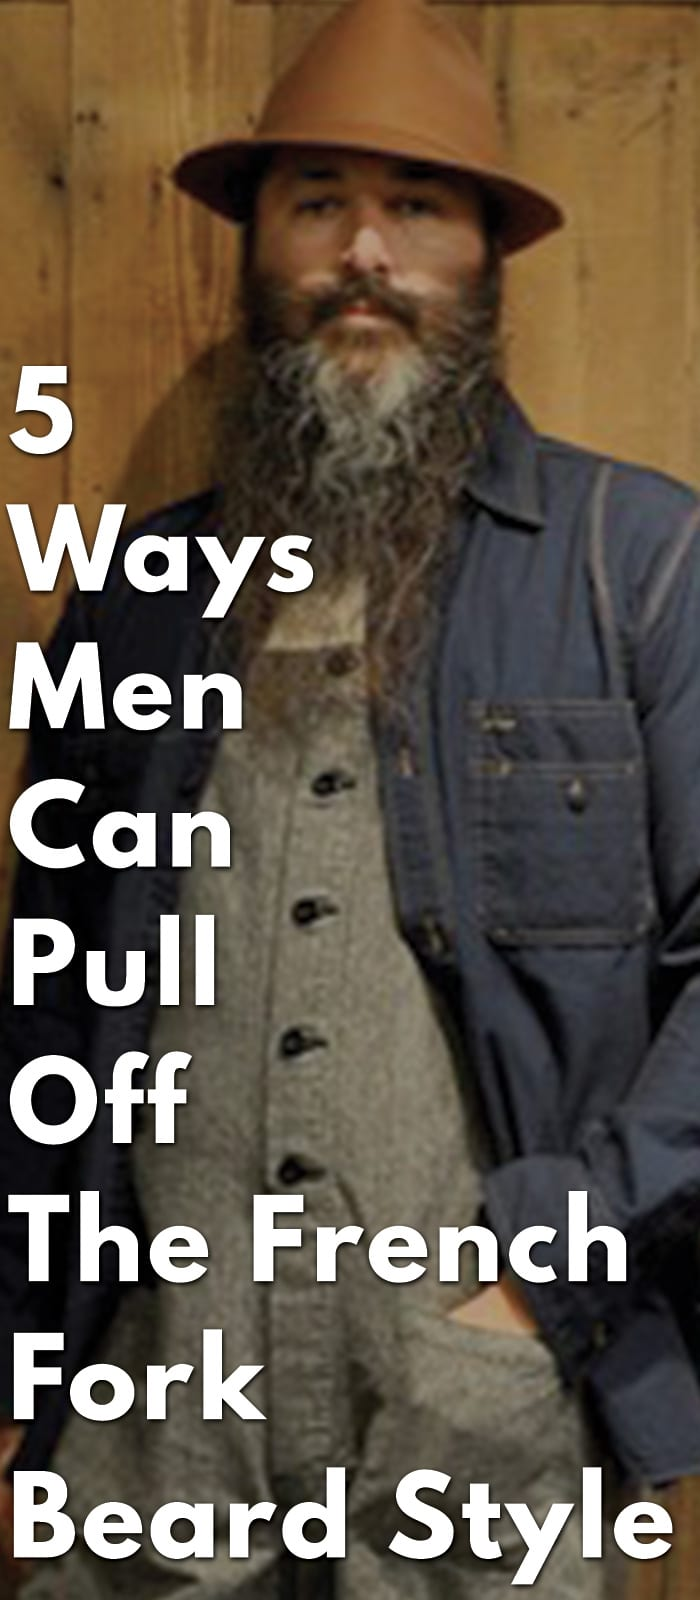 5-Ways-Men-Can-Pull-Off-The-French-Fork-Beard-Style.